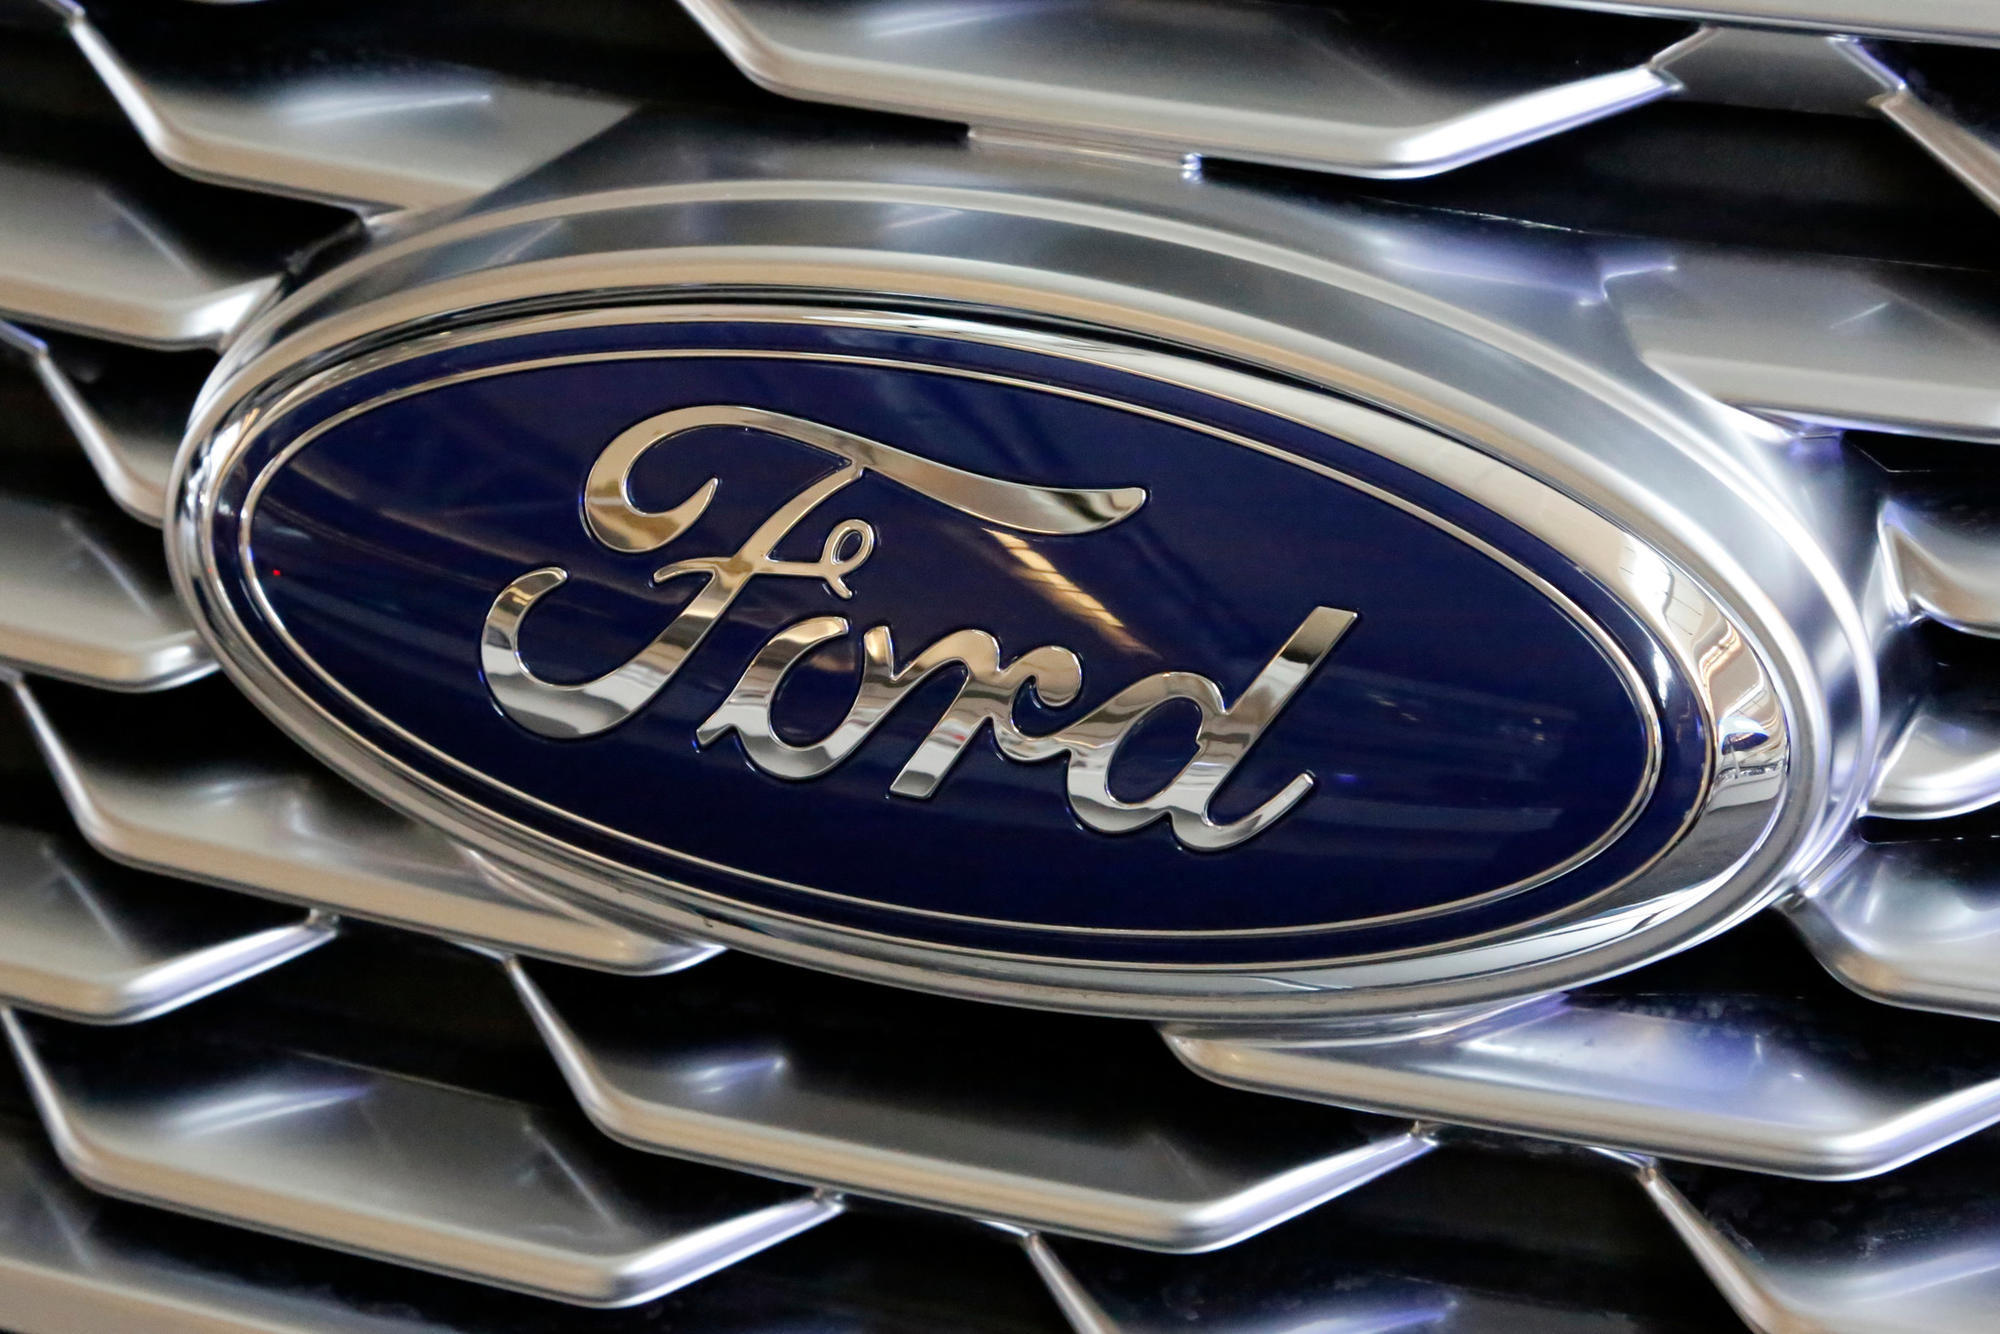 Ford To Discontinue All Cars Except For Mustang And Focus Hatch